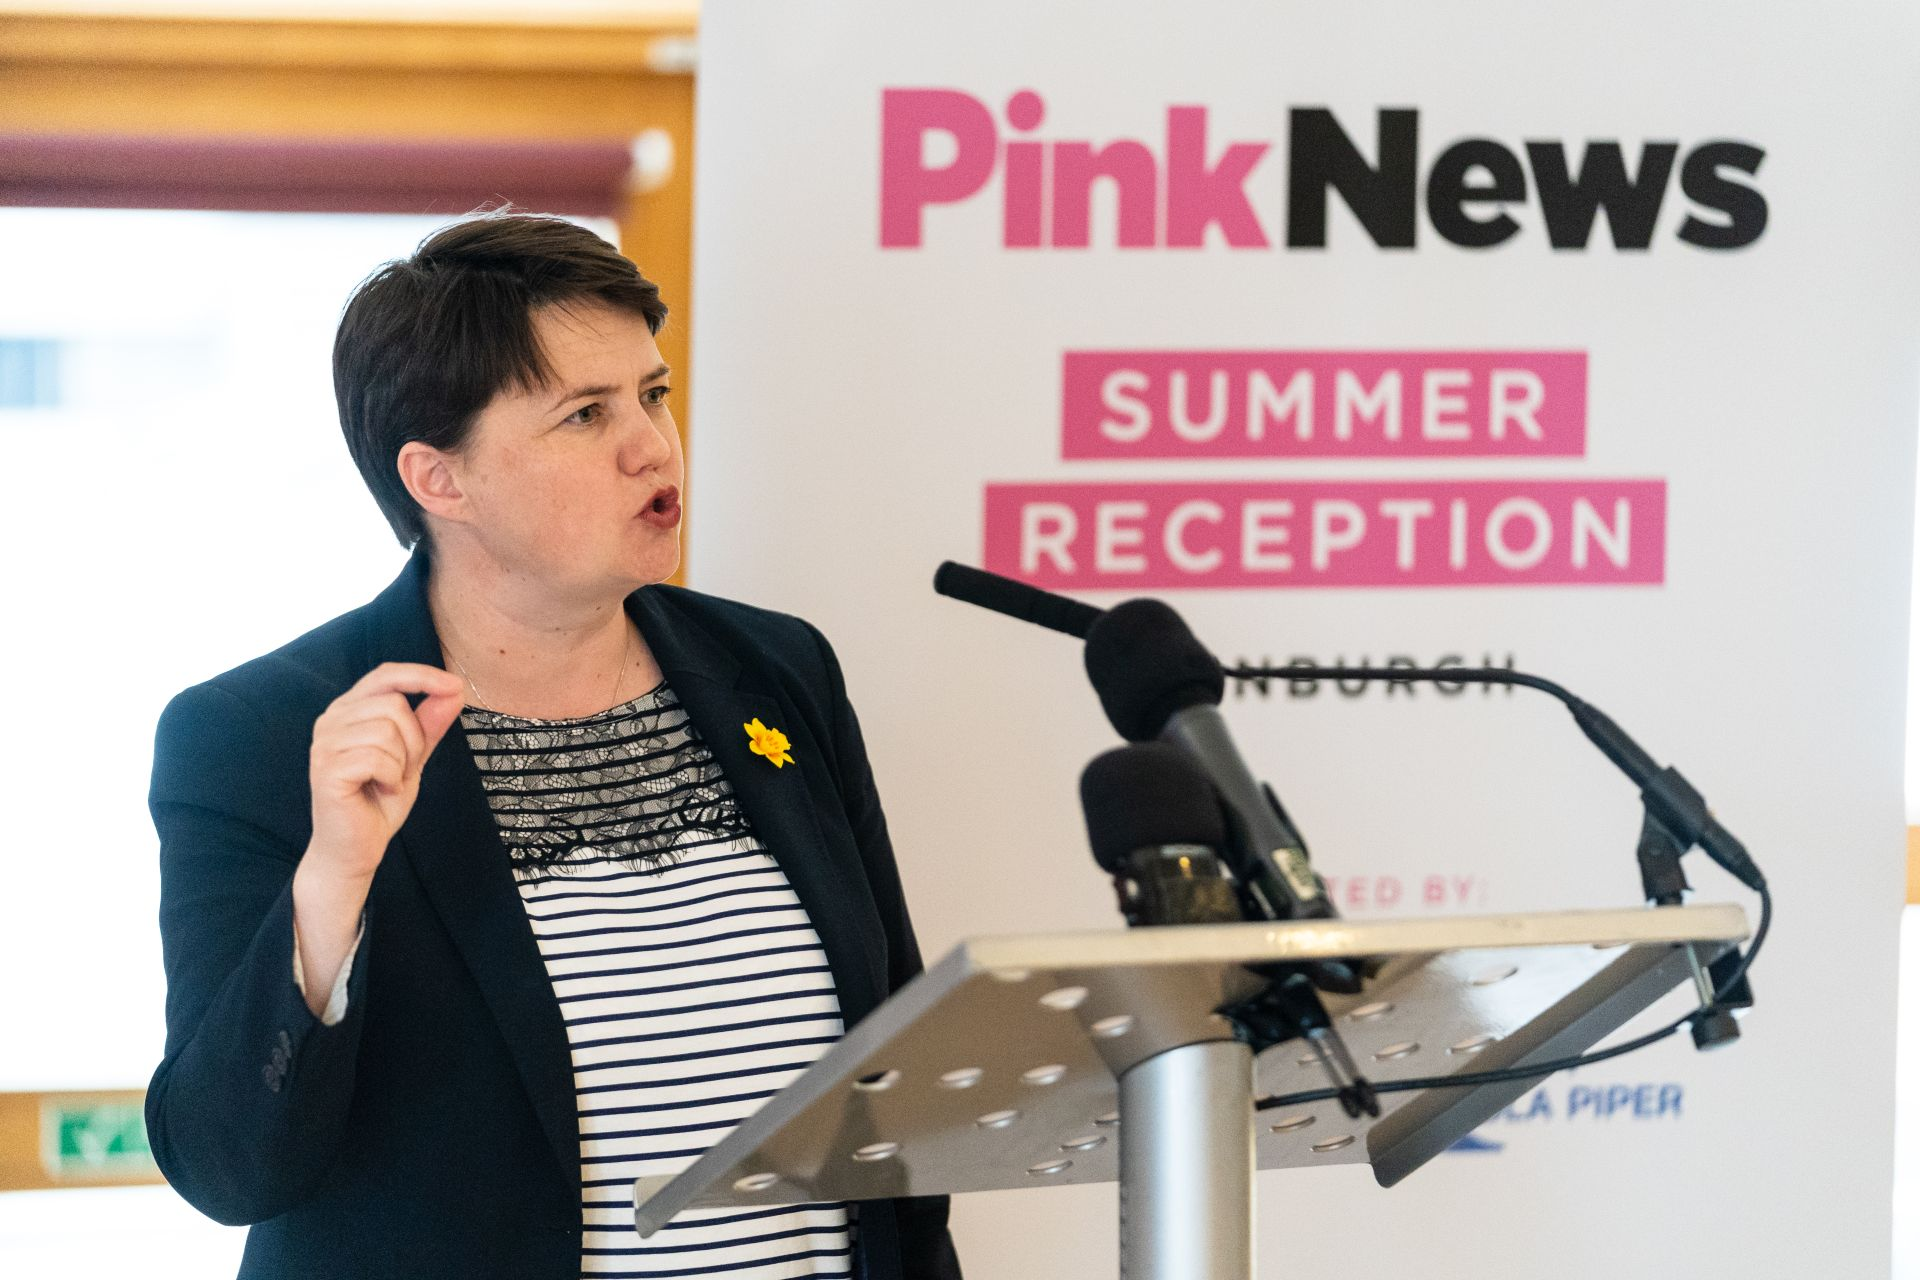 Davidson says baby gifts sign of progress on gay rights